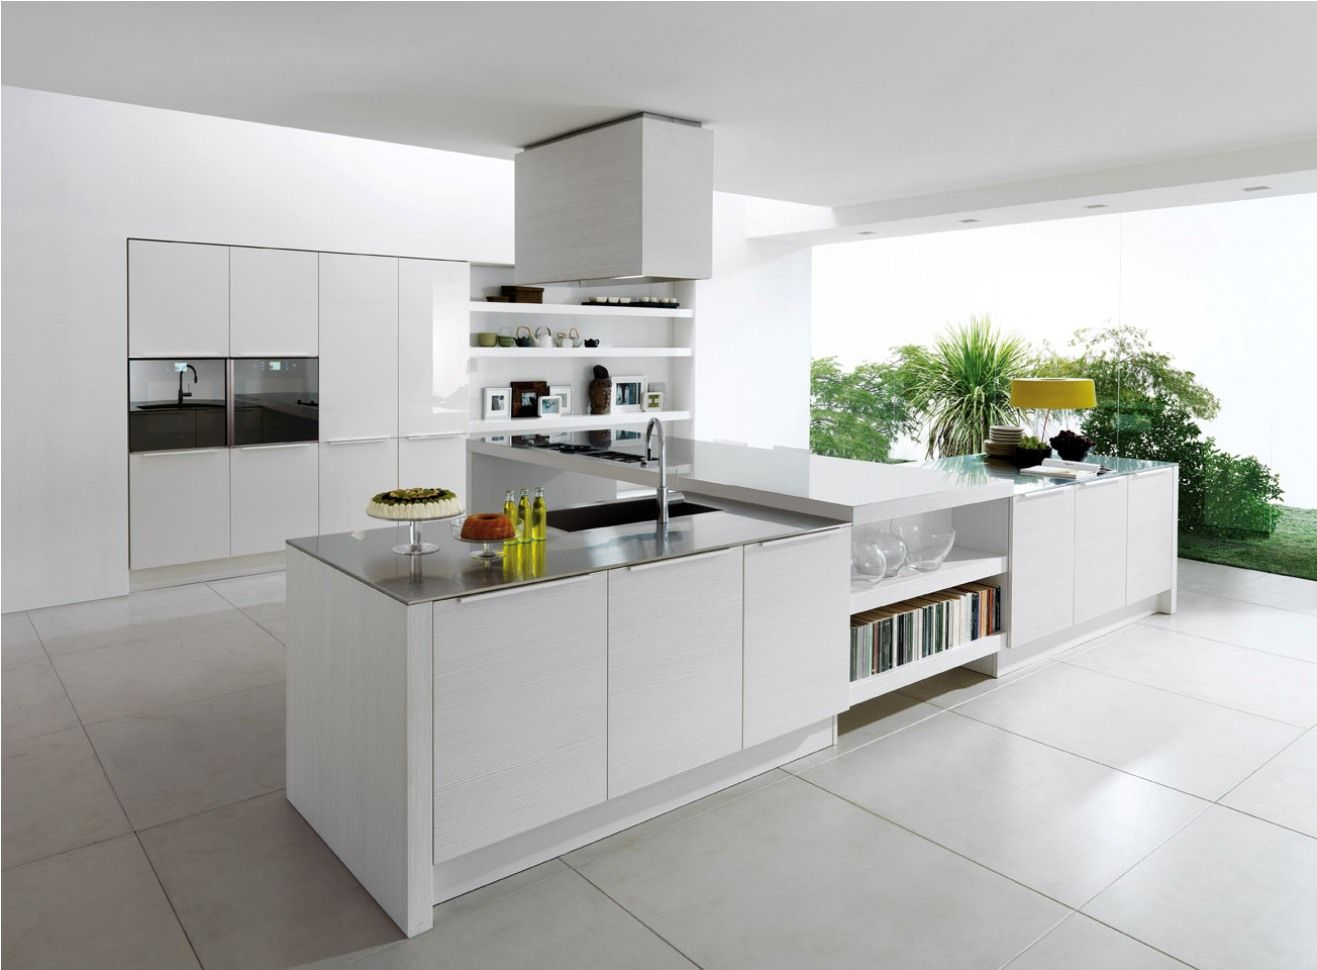 30 contemporary white kitchens ideas modern kitchen designs for Kitchen design ideas white cabinets